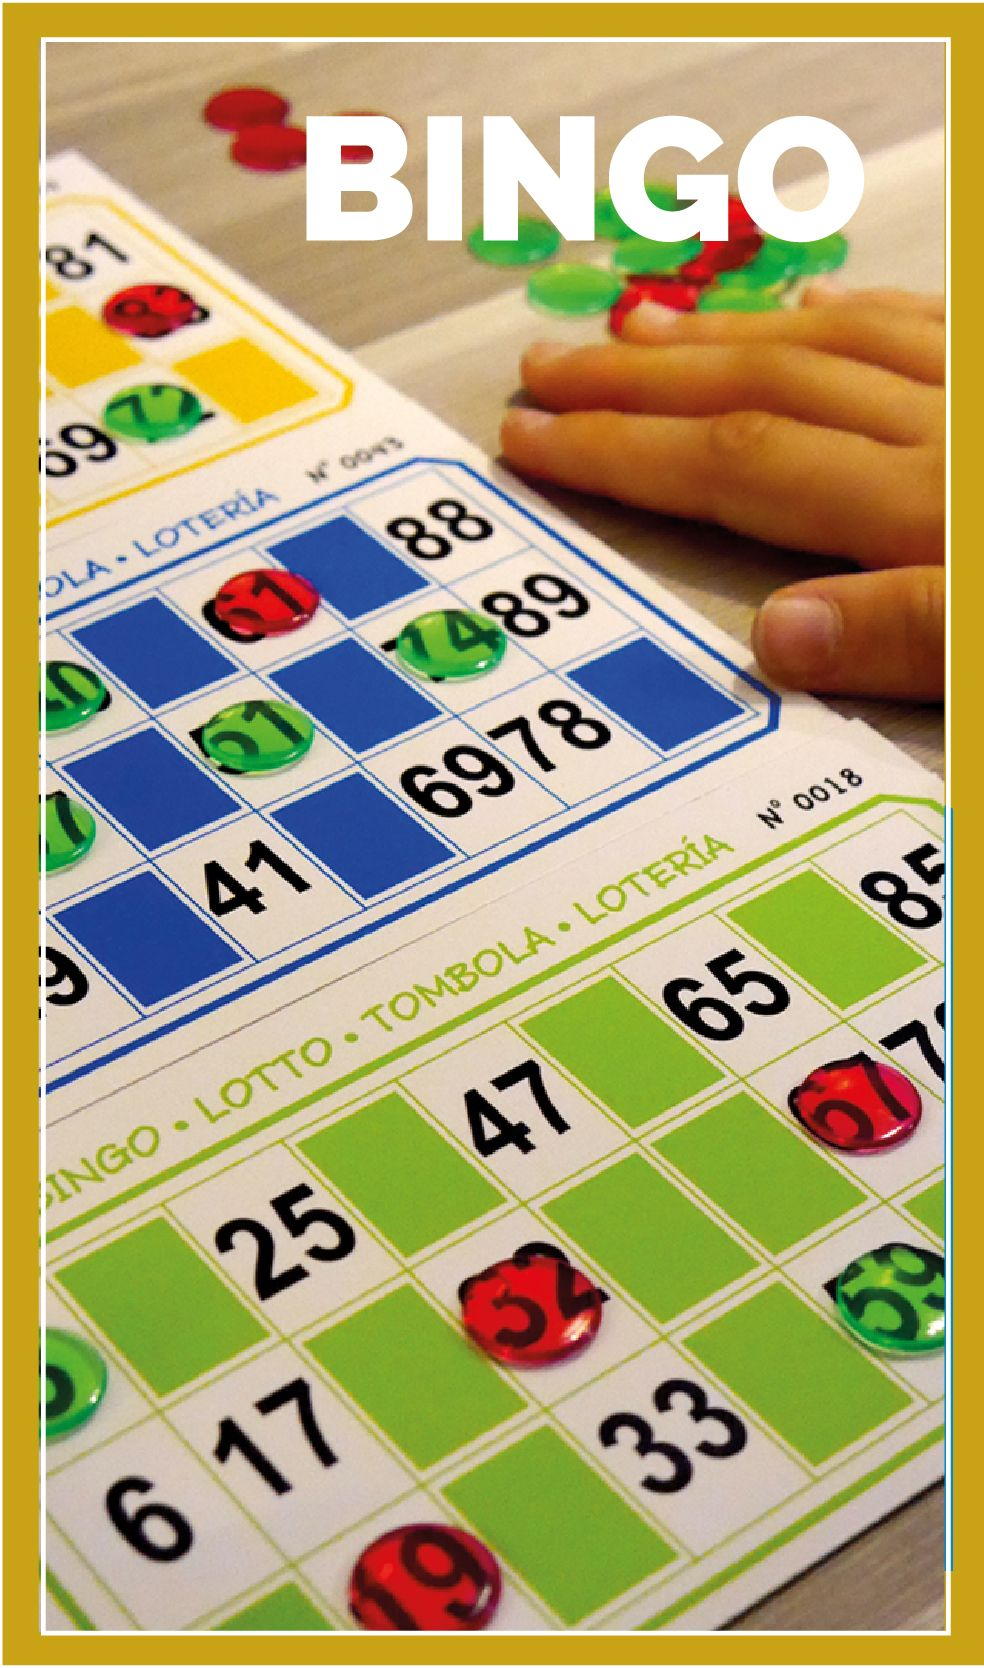 Image Affiche Loto Idees